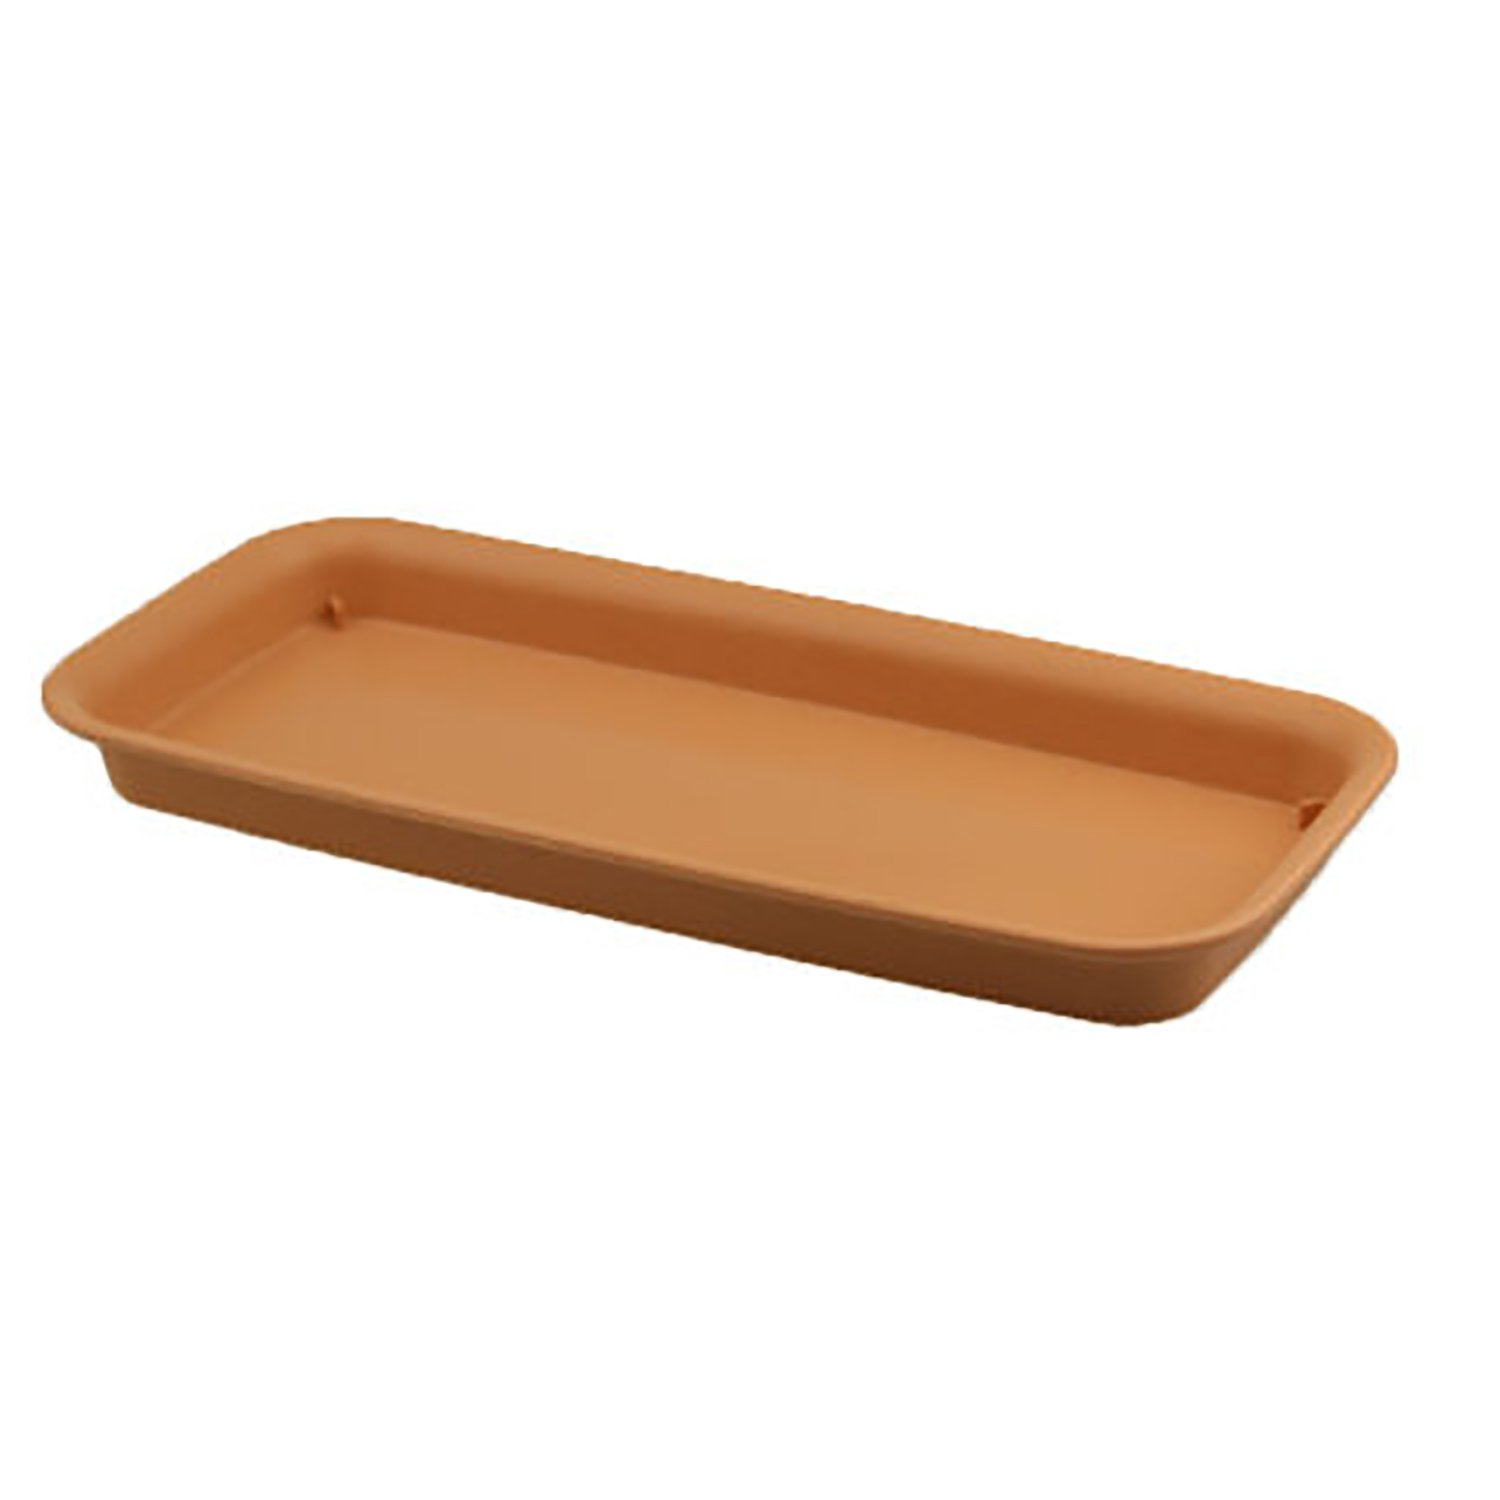 rescozy 16 Inch Plastic Rectangular Planter Tray Flower Pot Saucer, Light Brown by rescozy